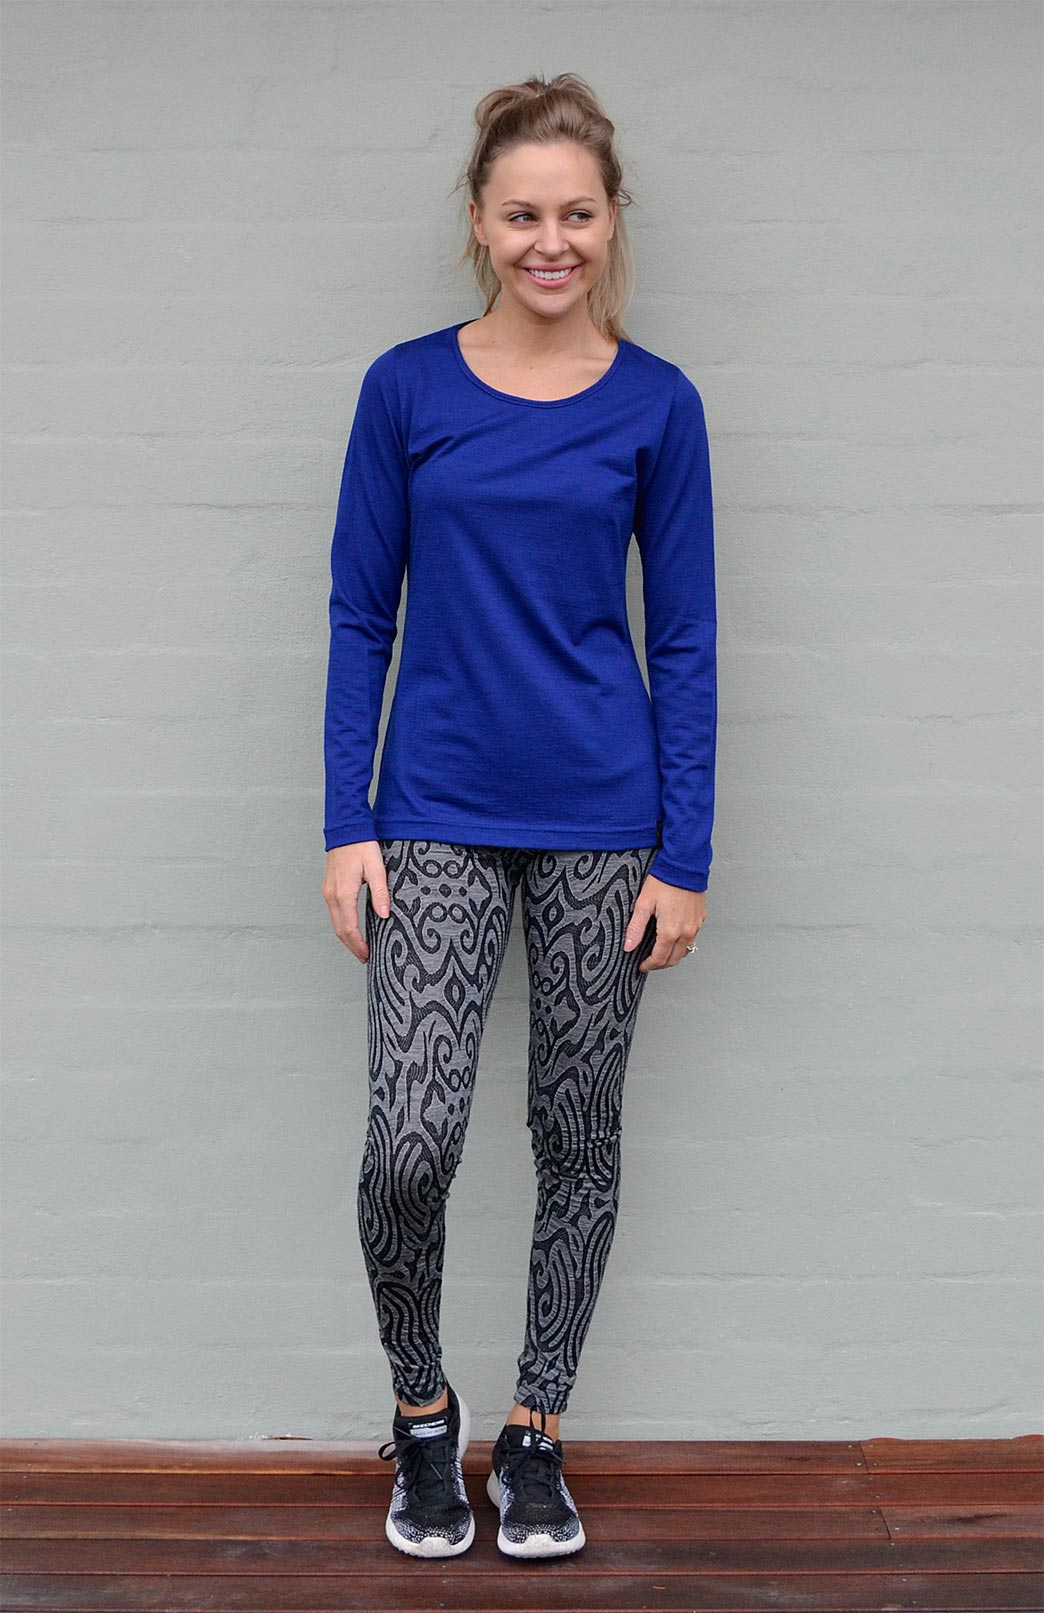 Round Neck Top - Active - Women's Sapphire Blue Outdoor and Activewear Round Neck Thermal Top - Smitten Merino Tasmania Australia